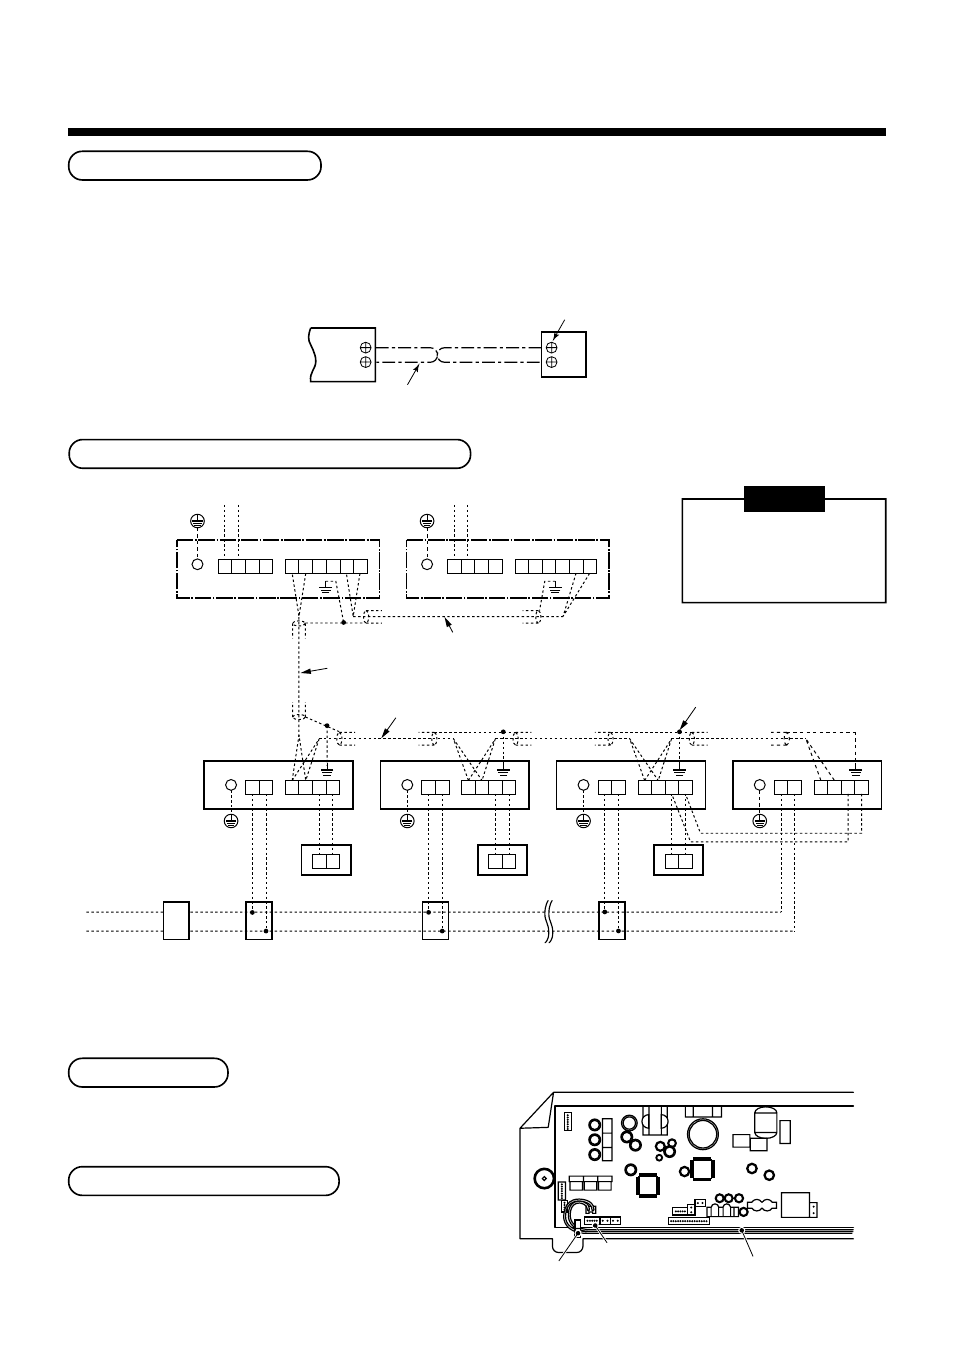 hight resolution of electric work remote controller wiring address setup toshiba mmu ap0071mh user manual page 20 32